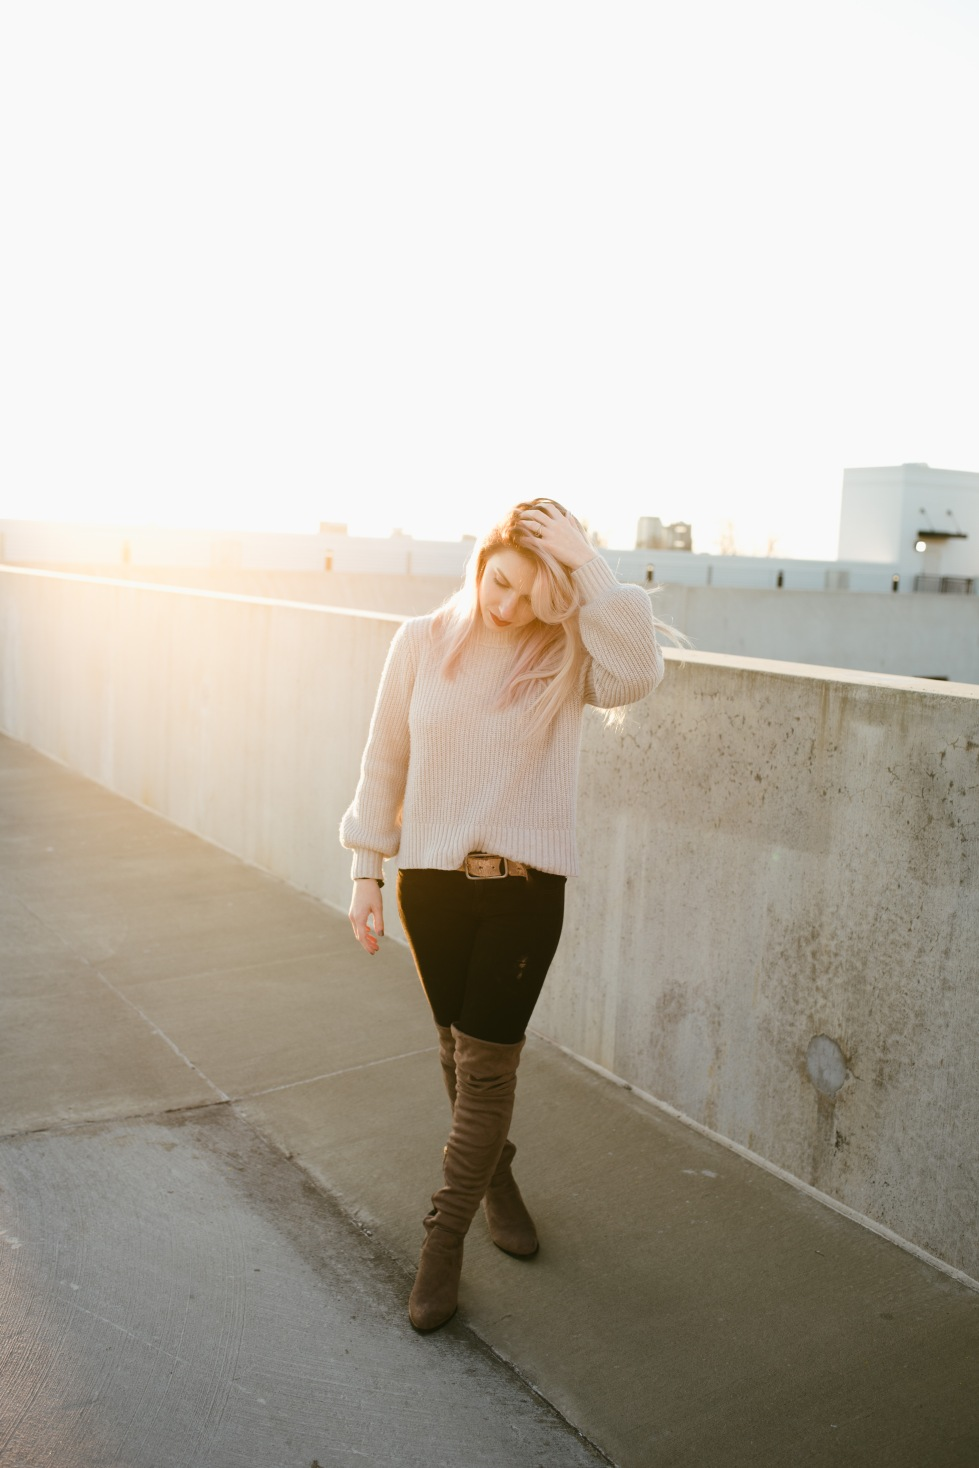 Portrait photographer, alabama photographer, sunset photo, rooftop photo, purple hair, pastel hair, candid photo, outfit, winter outfit, sweater, weddin photographer,